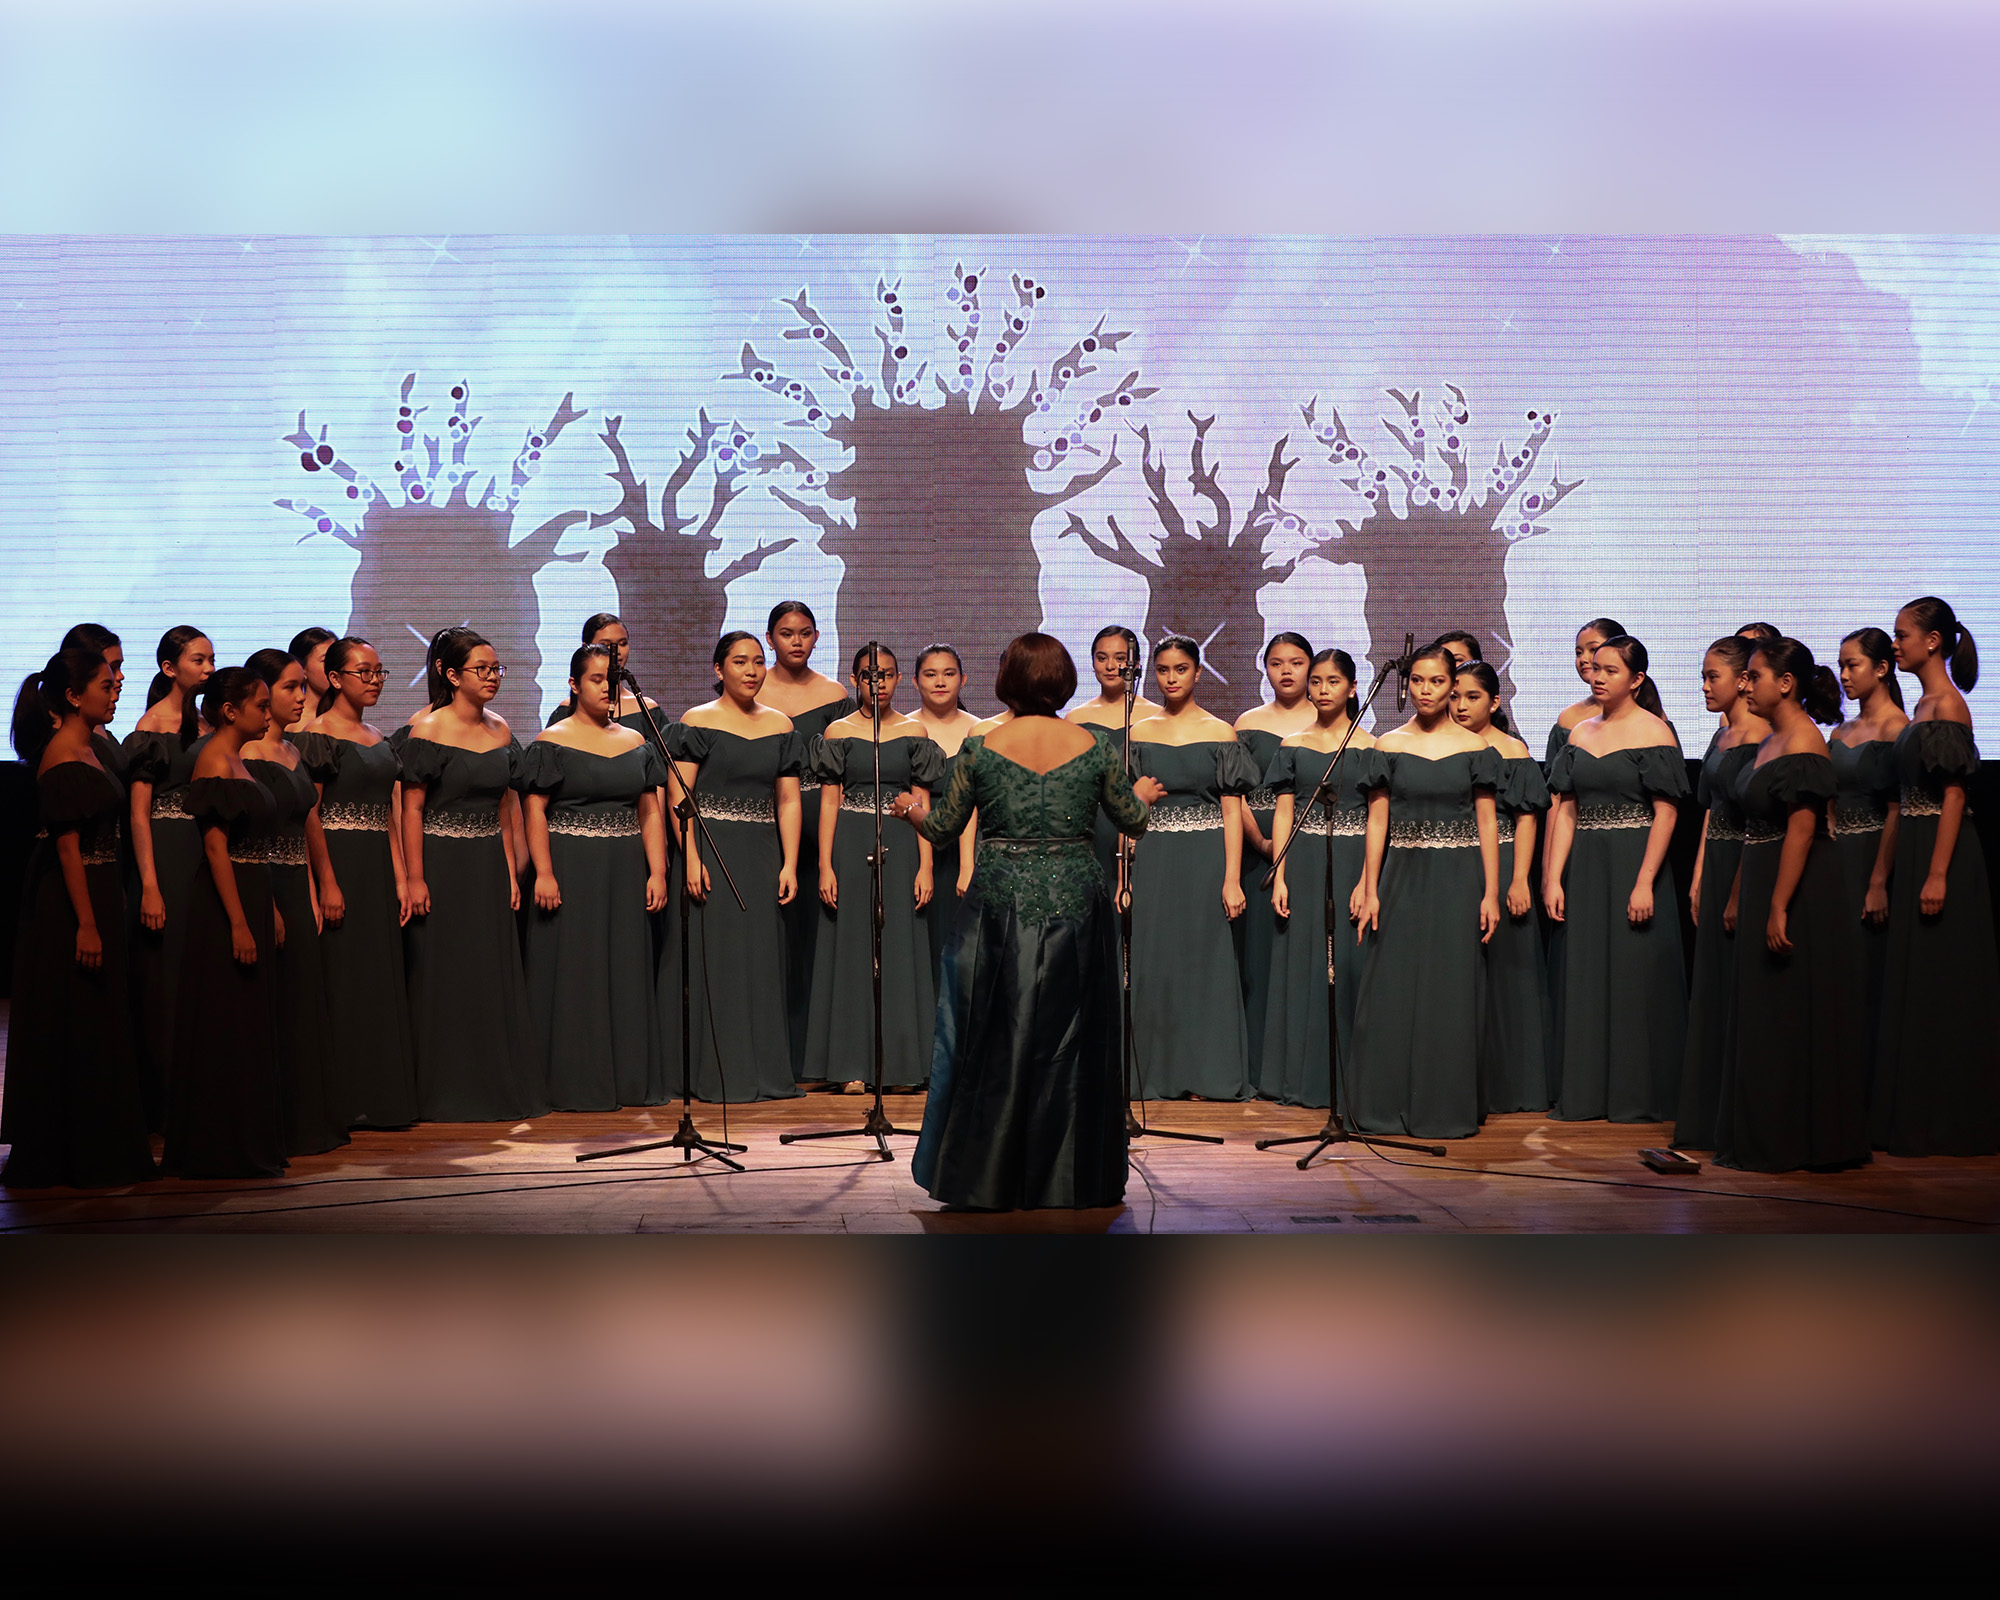 MCHS Glee Club wins in CMLI Voices in Harmony choral competition